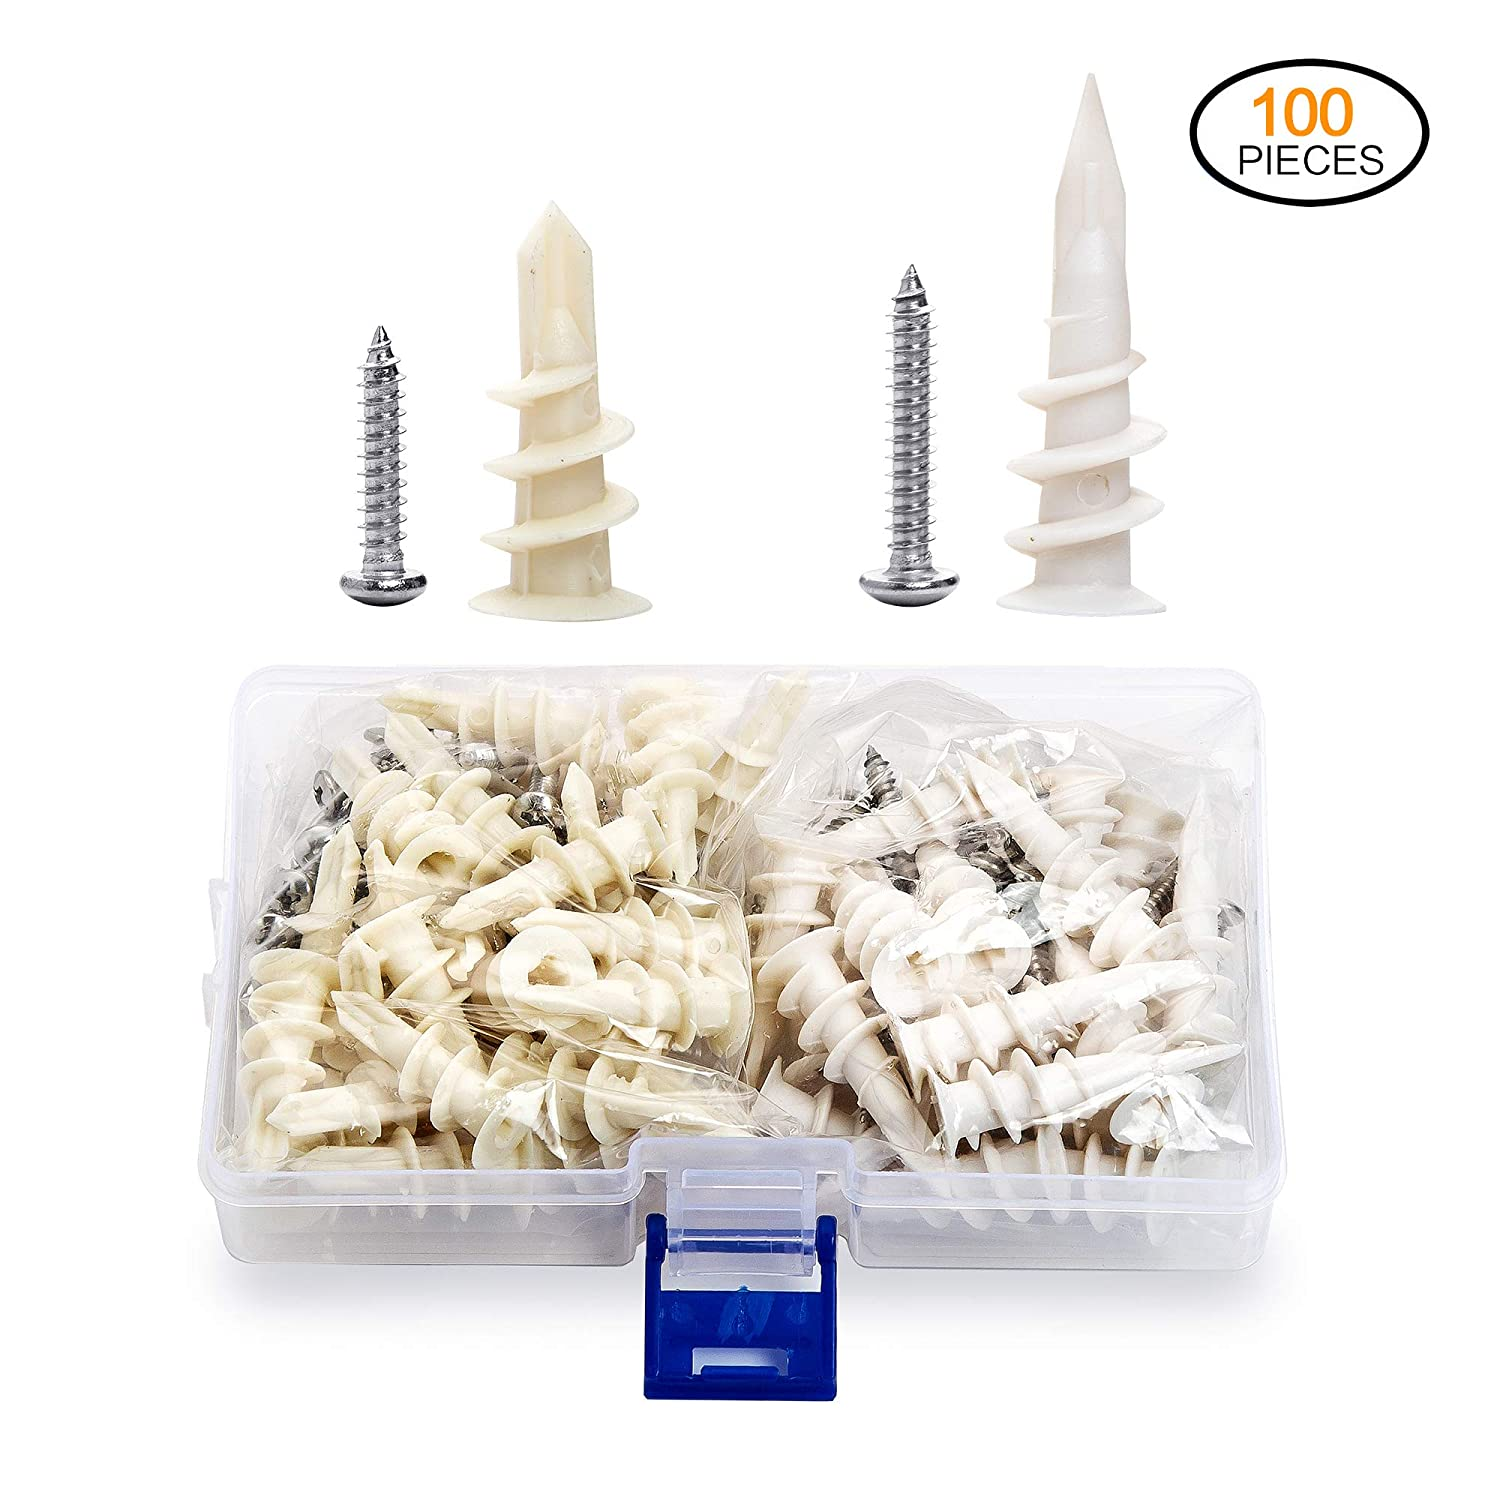 Drywall Anchors 100 Pcs Plastic Self Drilling Hollow Wall Anchors with Tapping Screws 2 Size Assortment Kit JUIDINTO